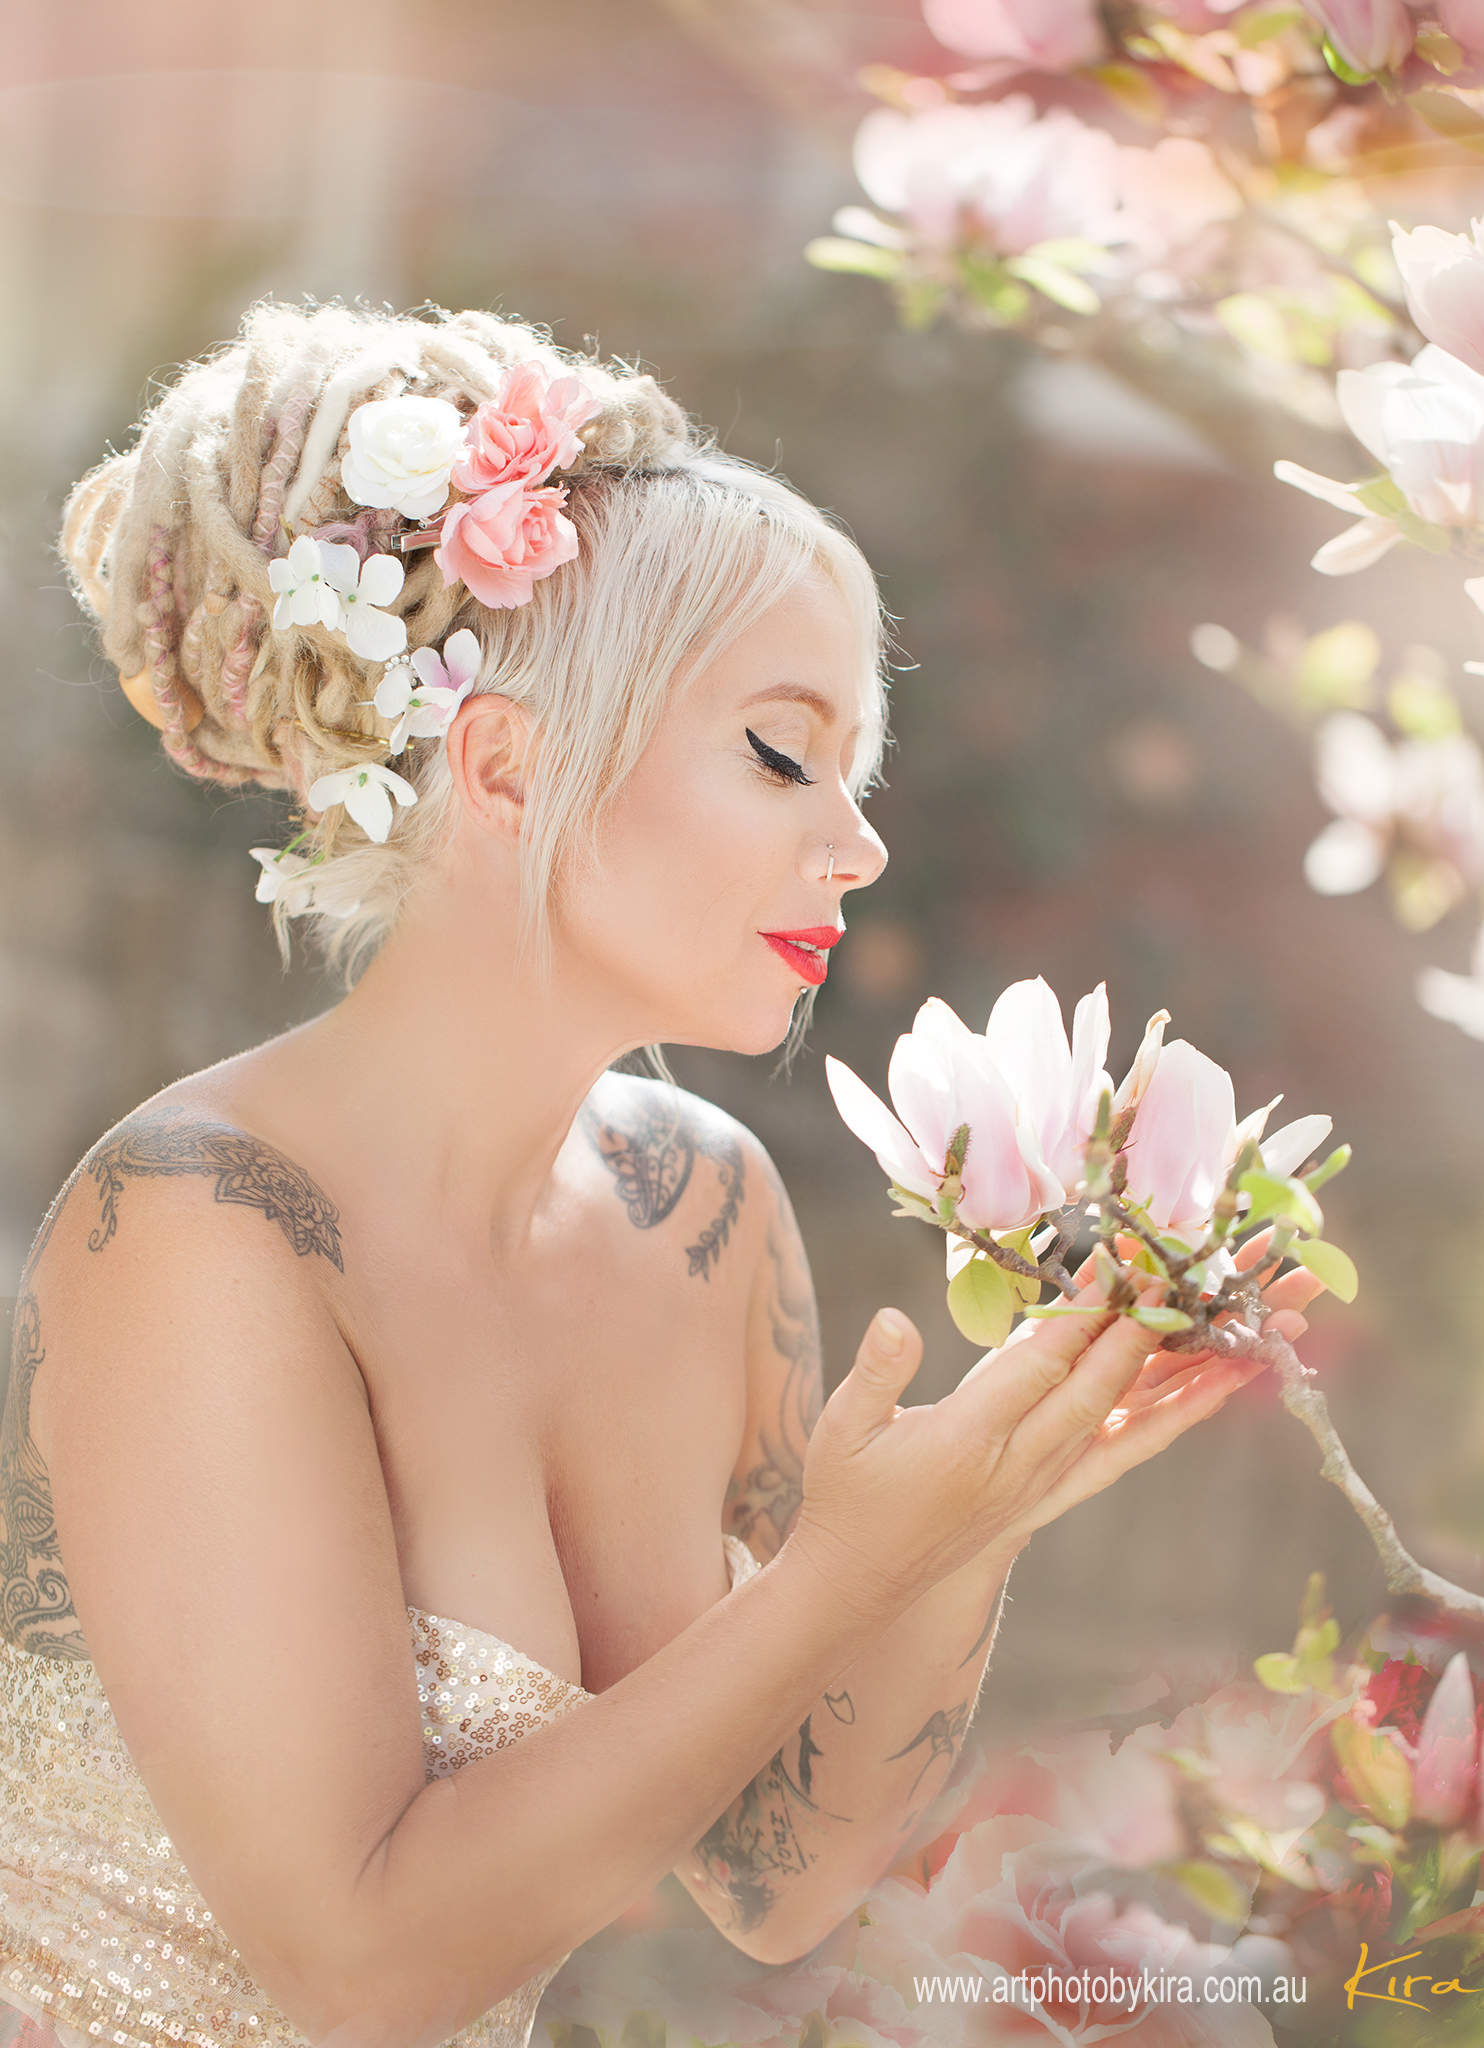 romantic portrait photography